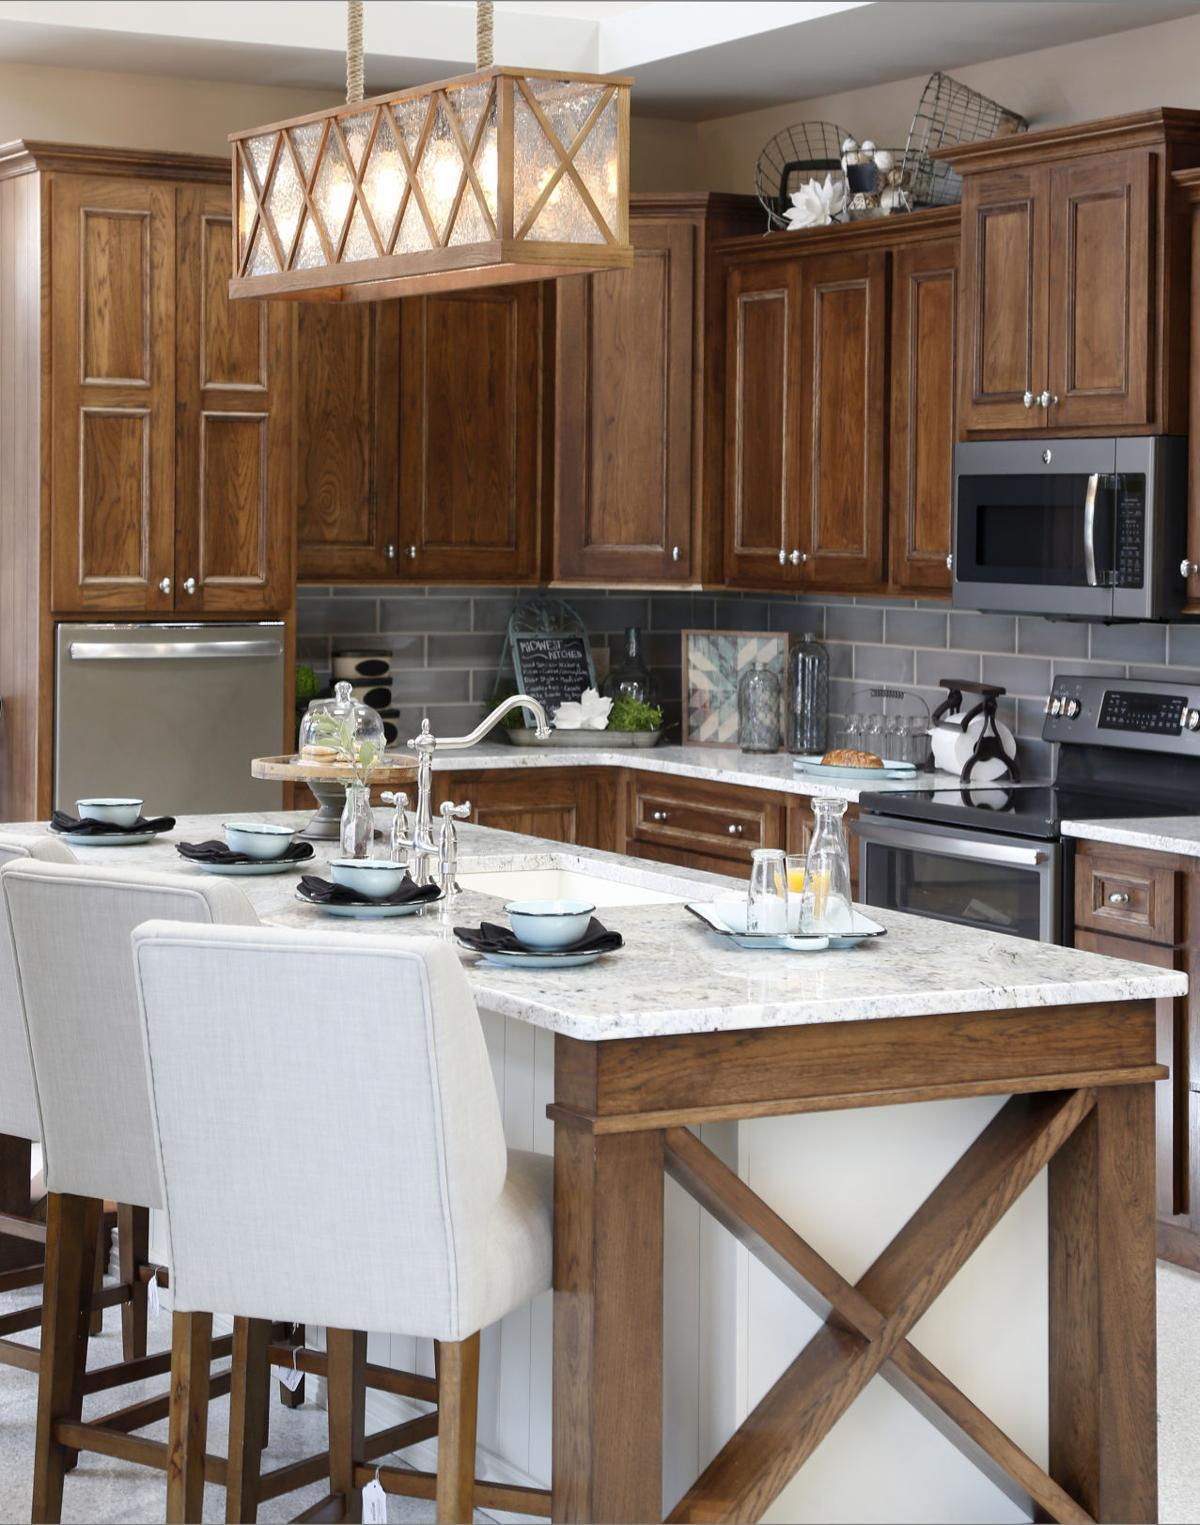 Custom cabinetry = style   Home   wcfcourier.com